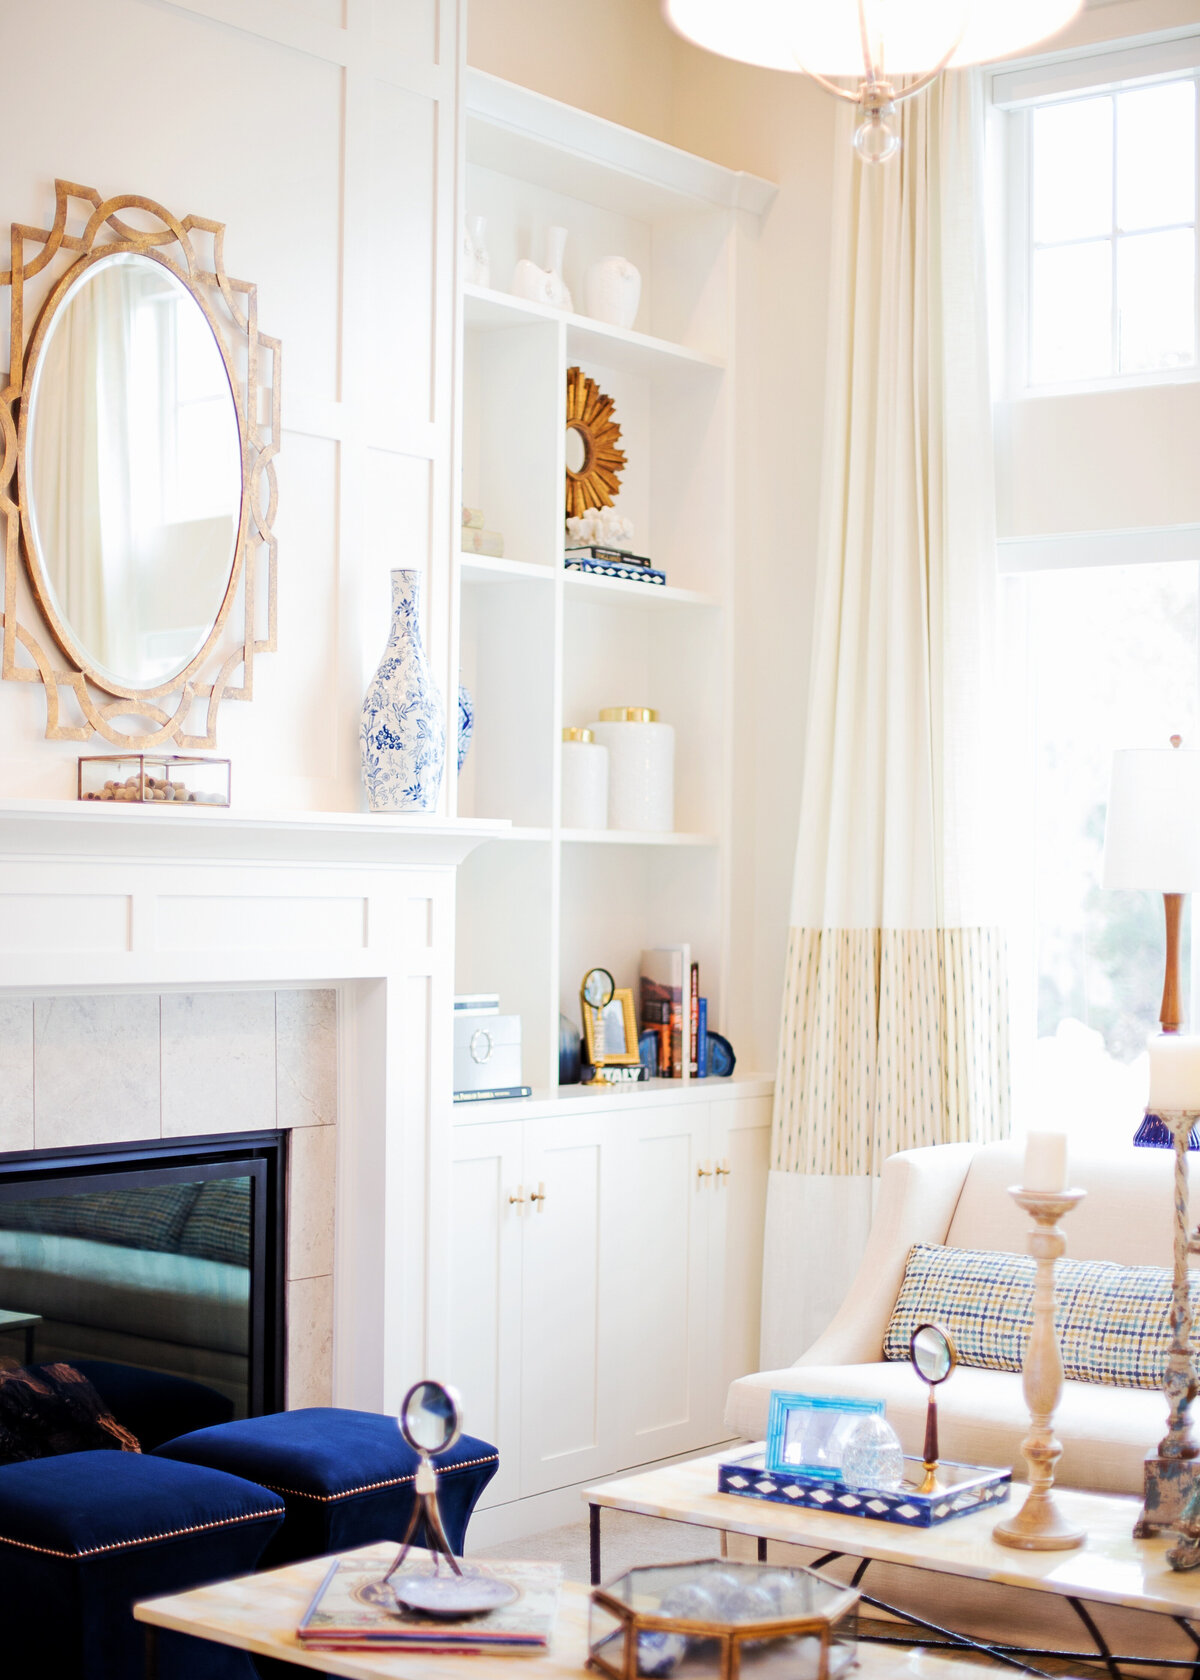 A white painted sitting room has royal blue velvet stools in front of the fireplace, with a gold mirror above it.